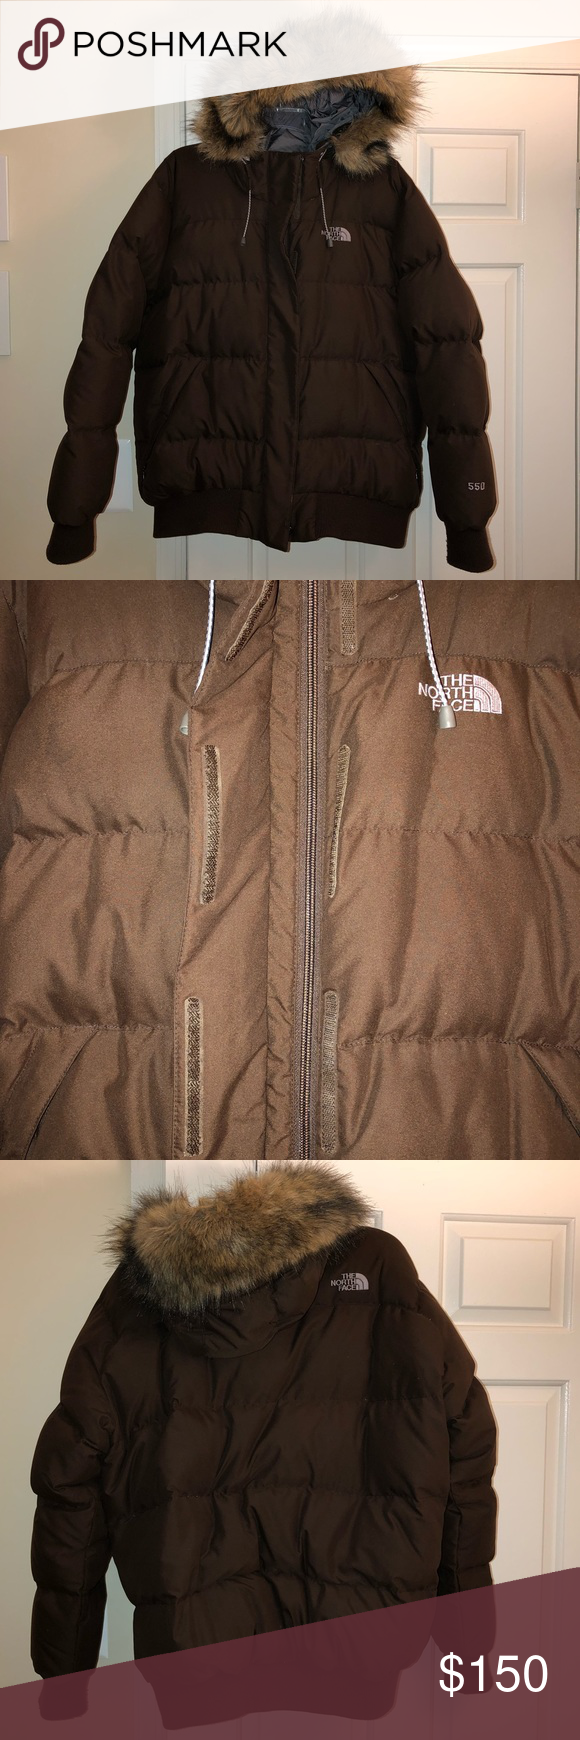 The North Face 550 Down Prodigy Puffer W Fur Hood Fur Hood The North Face Puffer [ 1740 x 580 Pixel ]